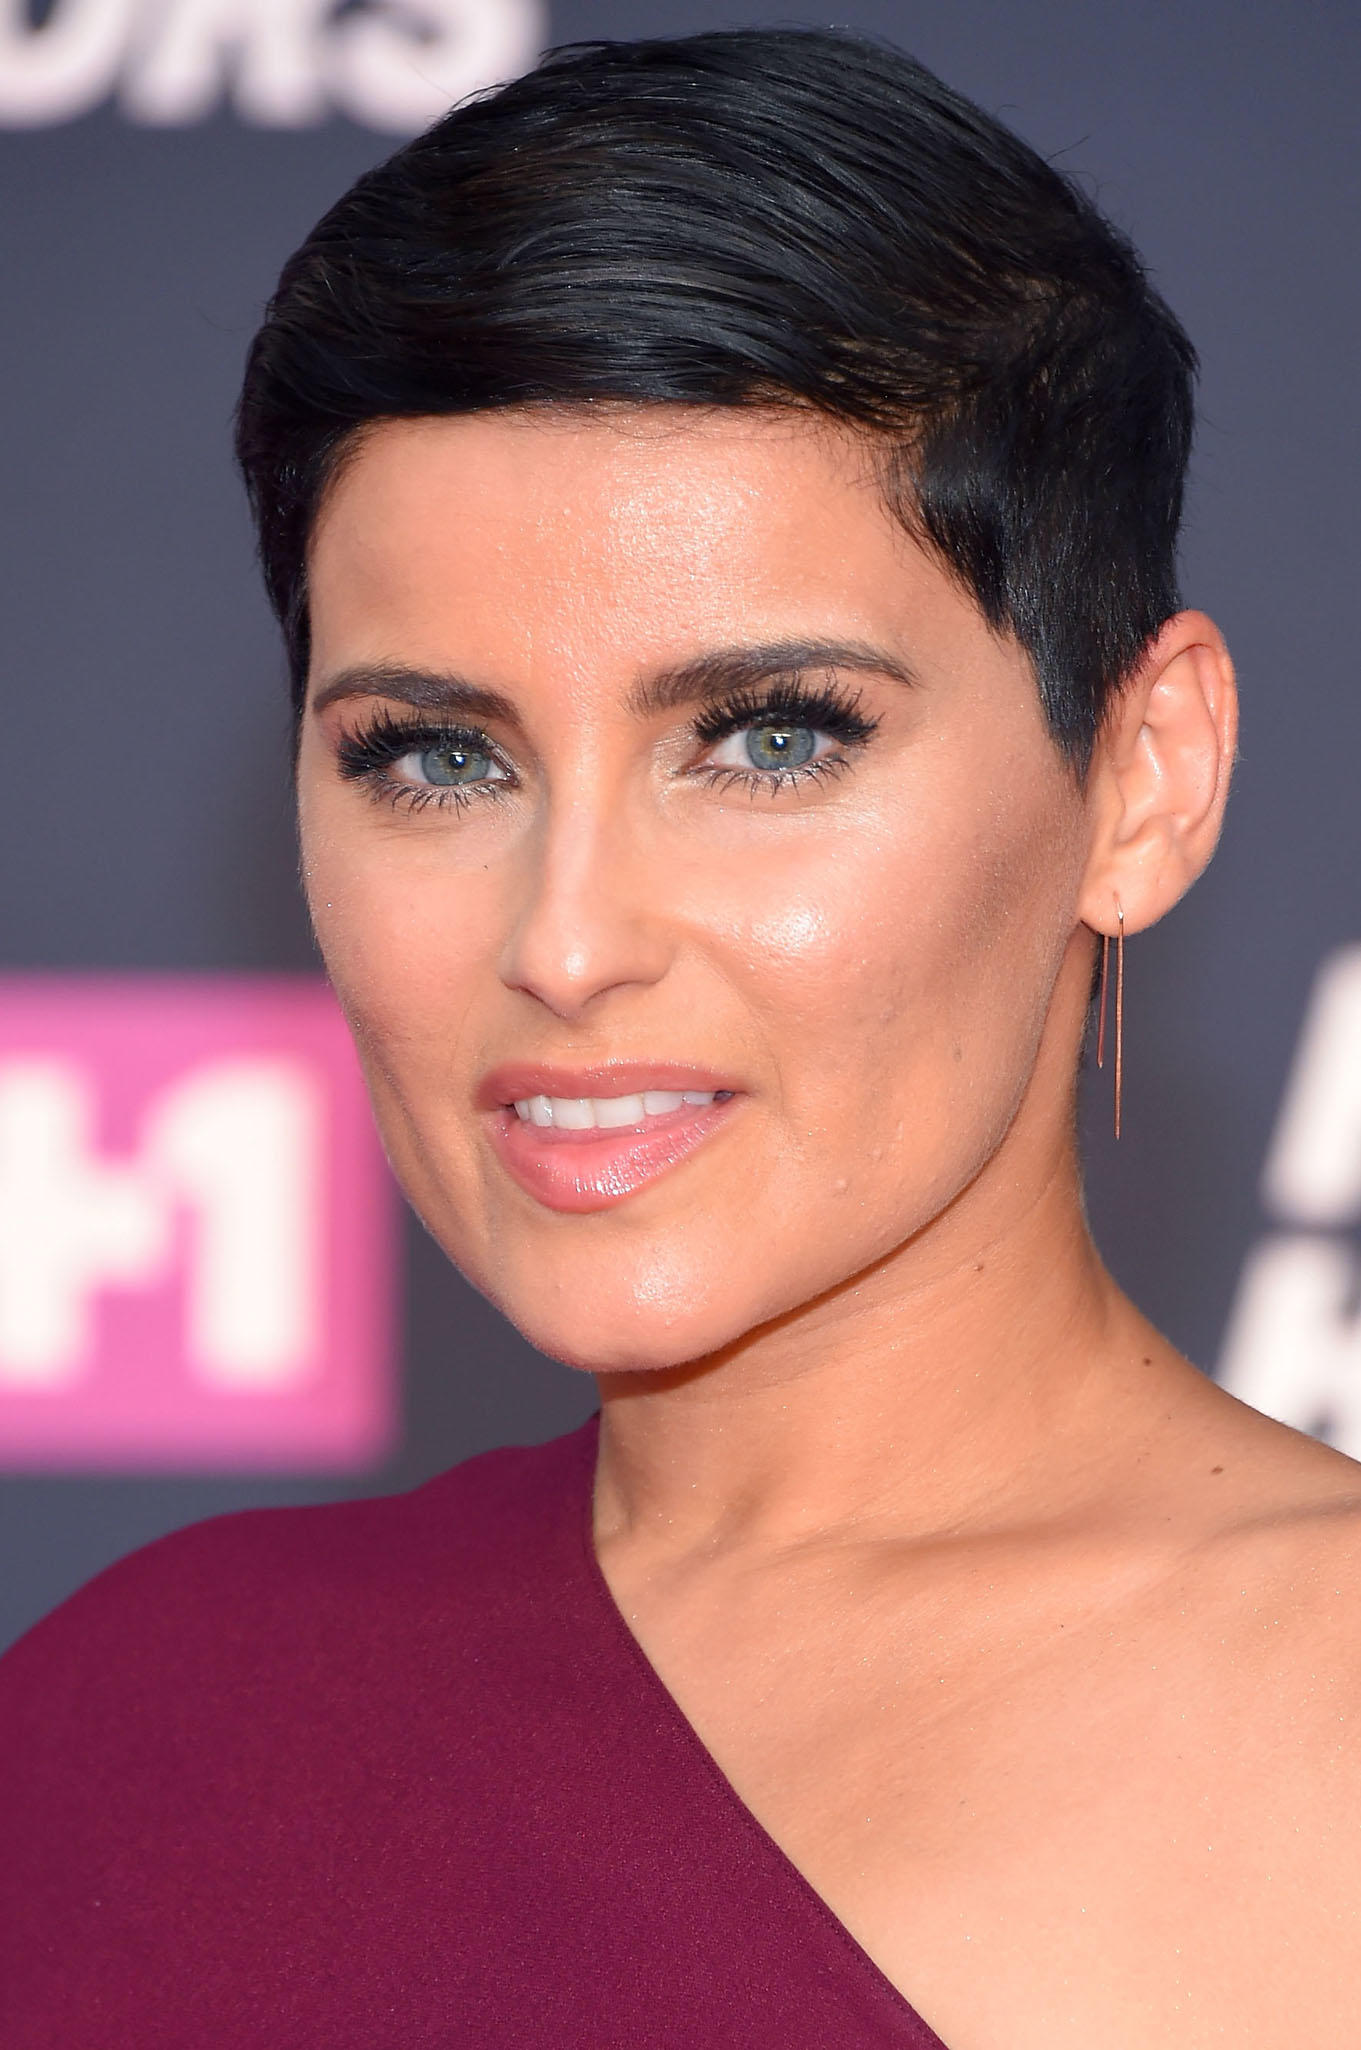 Nelly Furtado at the VH1 Hip Hop Honors: All Hail The Queens in New York City.